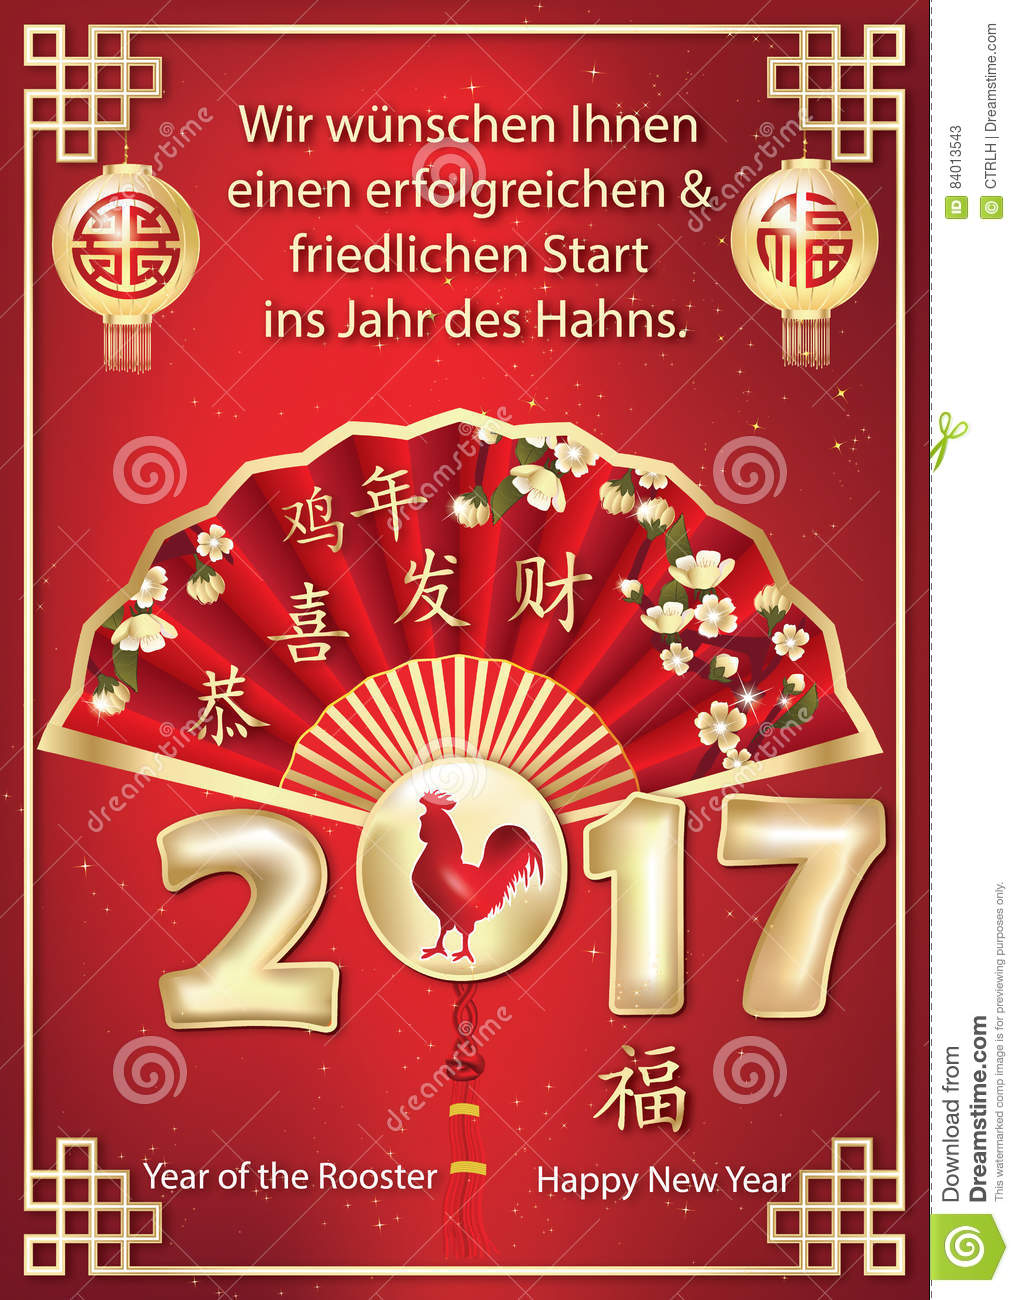 German Business Greeting Card For Chinese New Year Of The Rooster ...